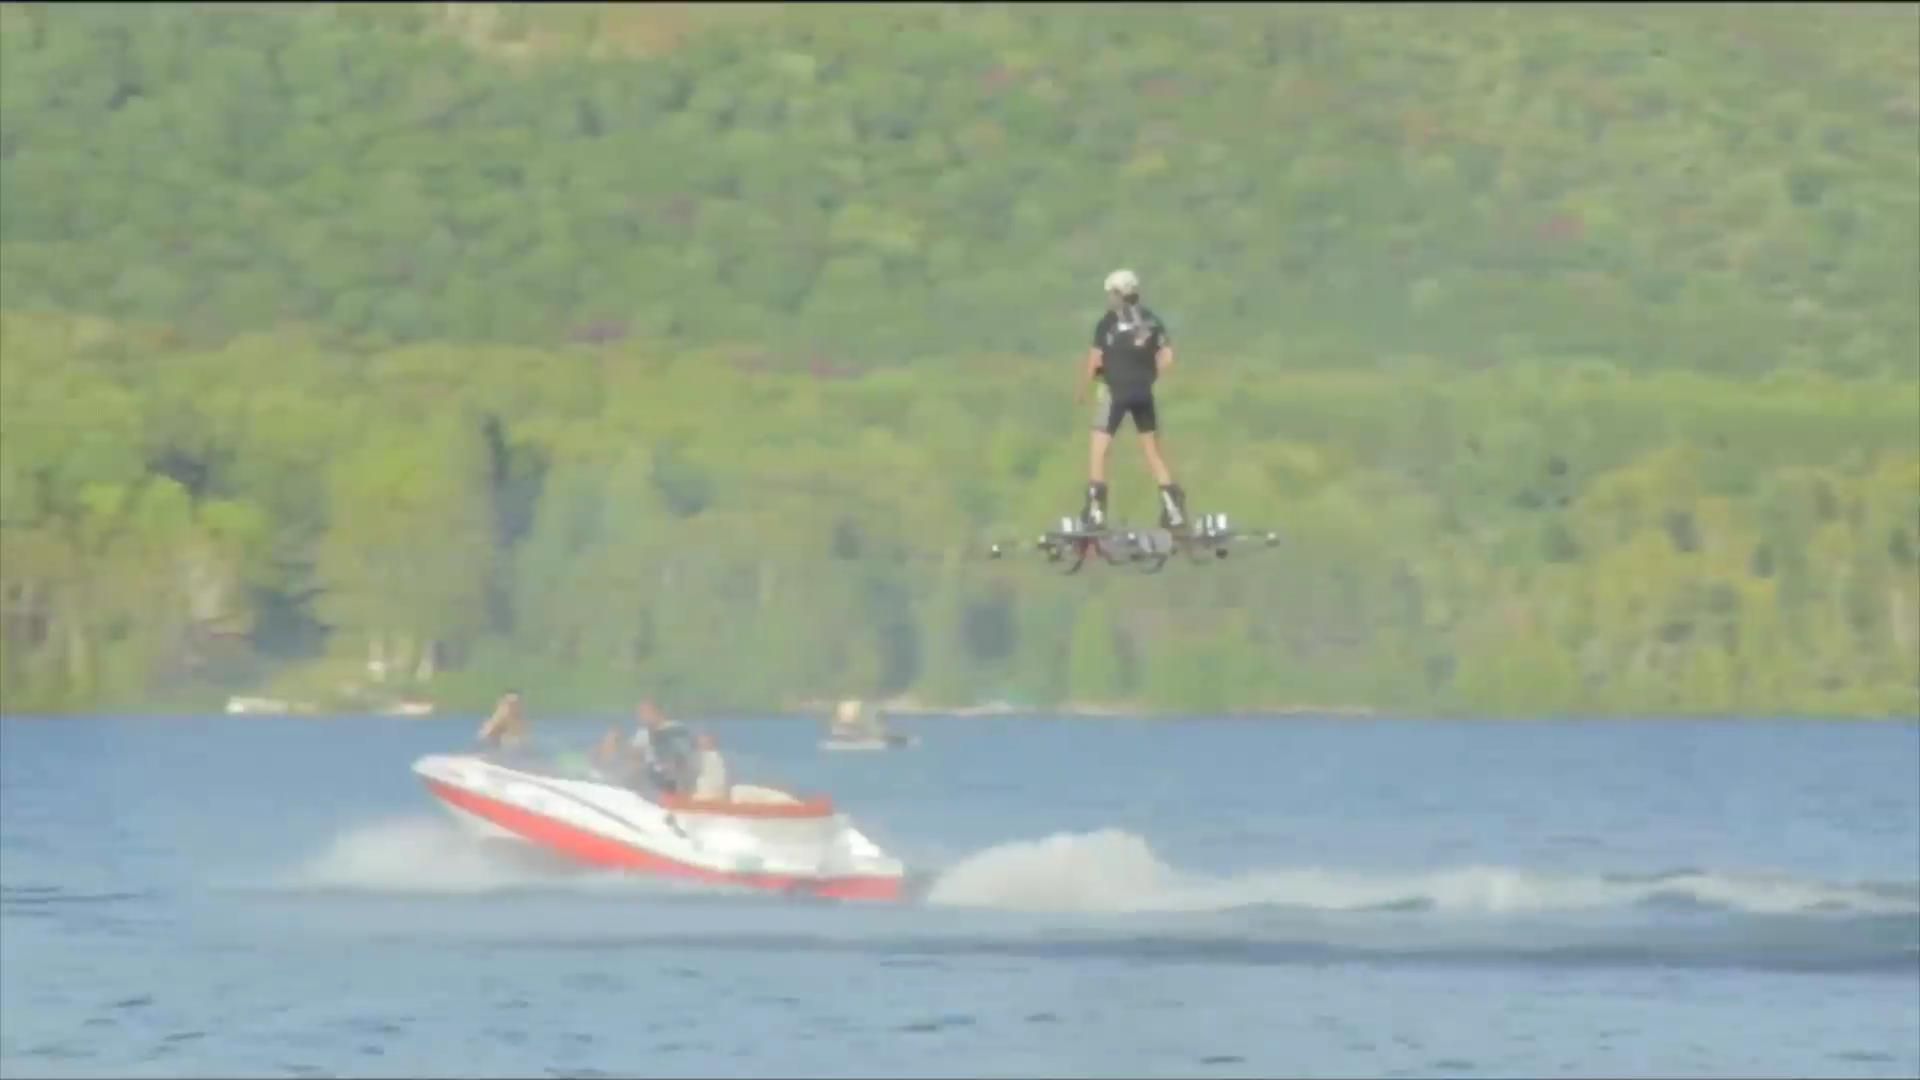 World record set for longest hoverboard ride